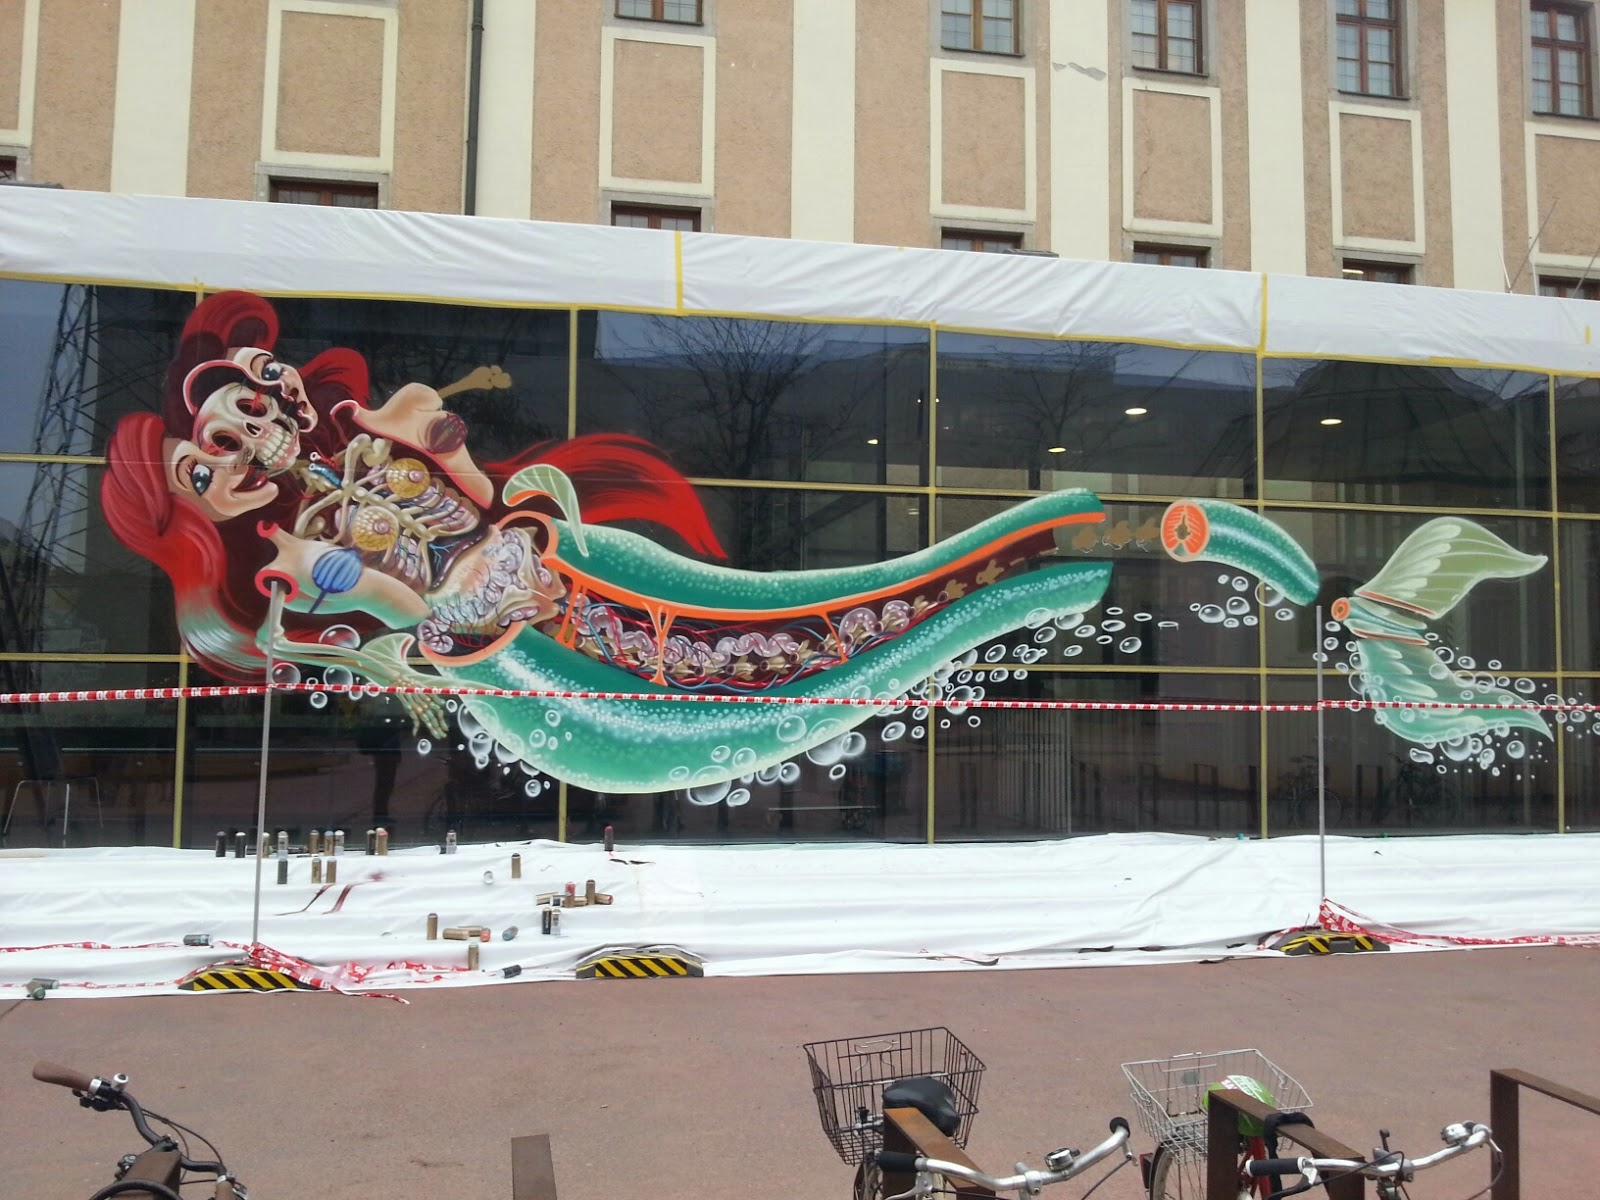 """While we last heard from him last month with Buff Monster for POW! WOW! (covered), Nychos is now back in Austria where he just finished working on this new piece entitled """"Dissection of the little mermaid"""""""